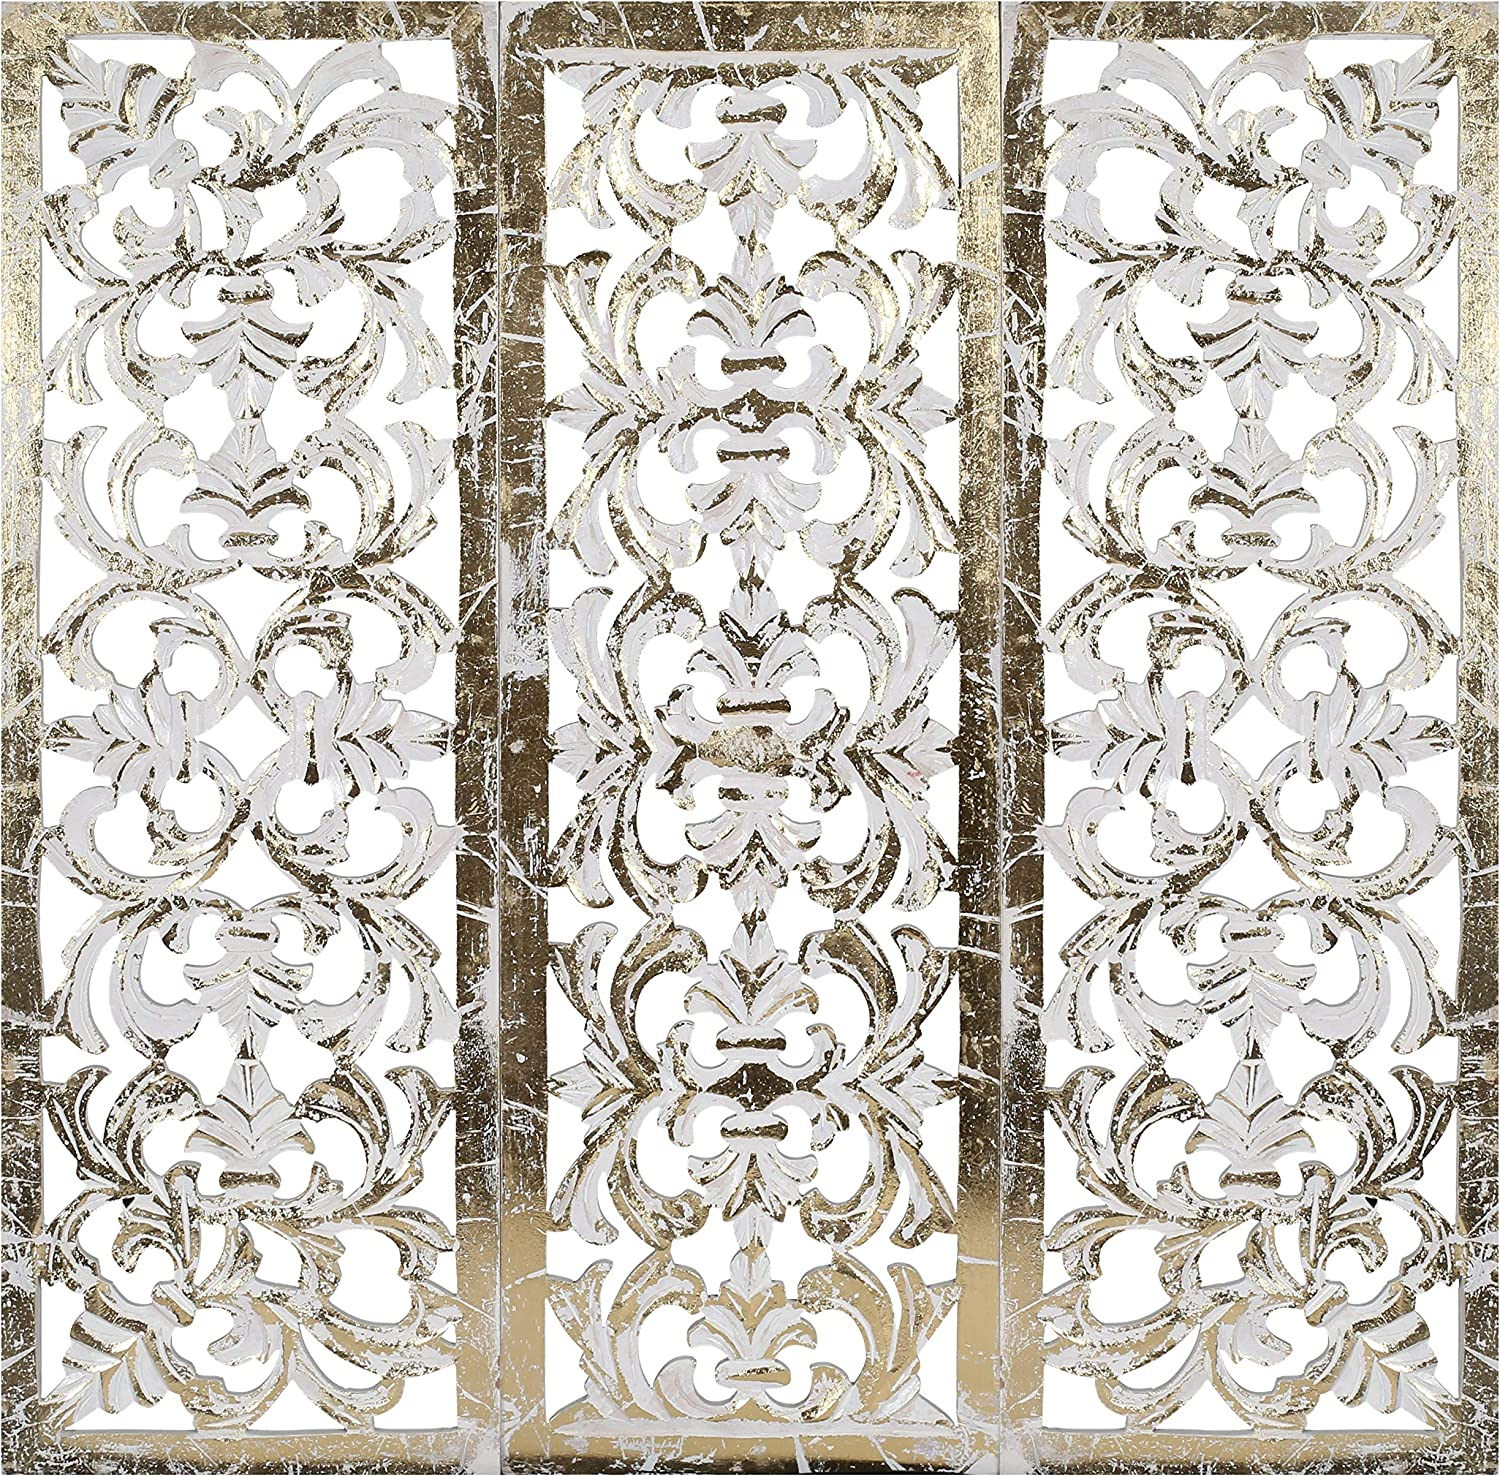 Wooden Designer Wall Hanging Plaques/Wall Plaque Wall Décor Plaques Set of 3-36x12 Inch - Foil Gold White, Elegant Sculpture Wall Décor Panel to Enhance The Décor of Your Room or Office